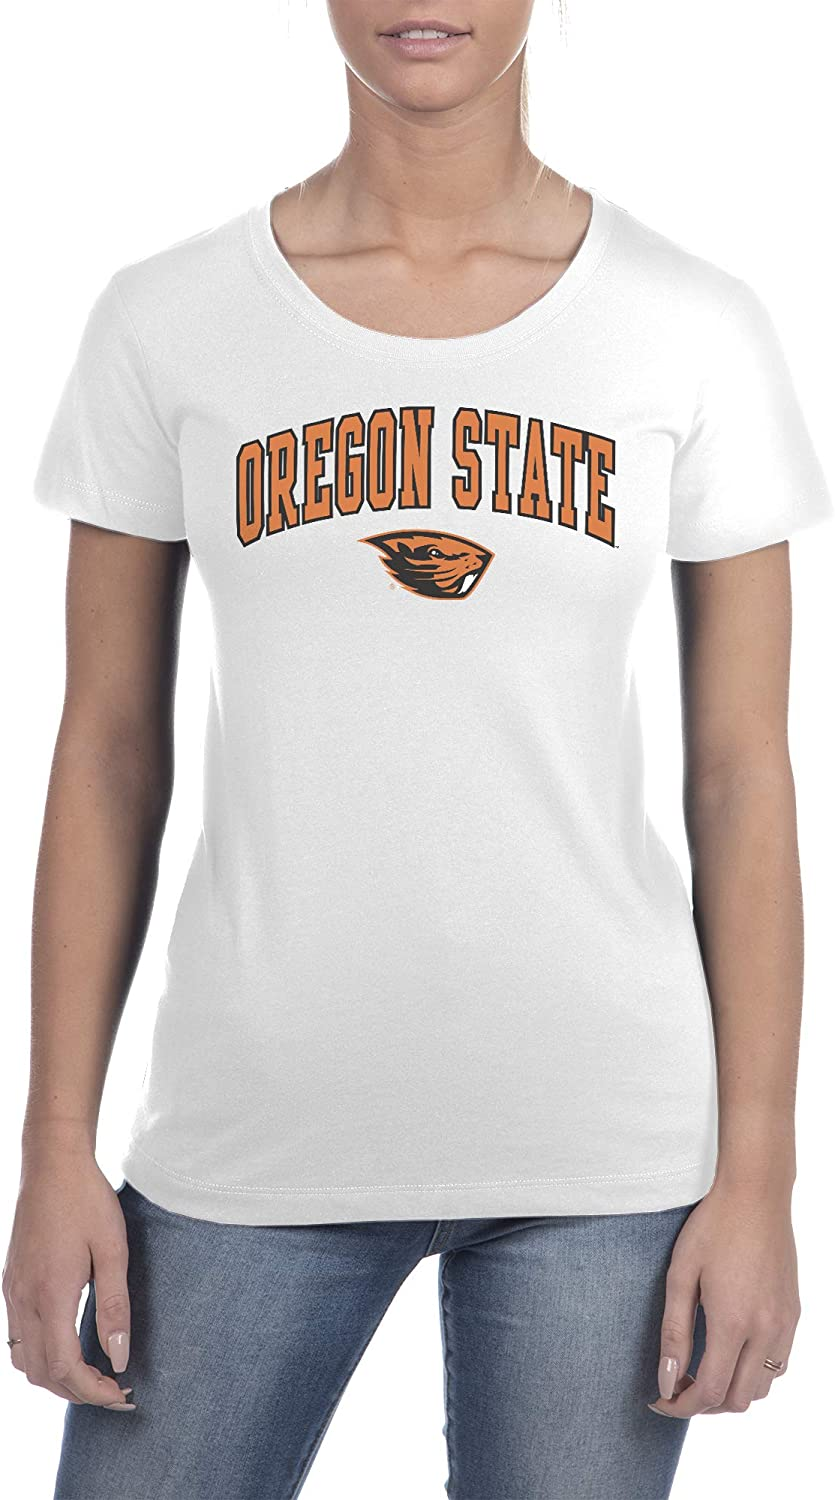 Top of the World NCAA Womens Trim Modern Fit Ideal Short Sleeve Crew Neck Team Color Tee